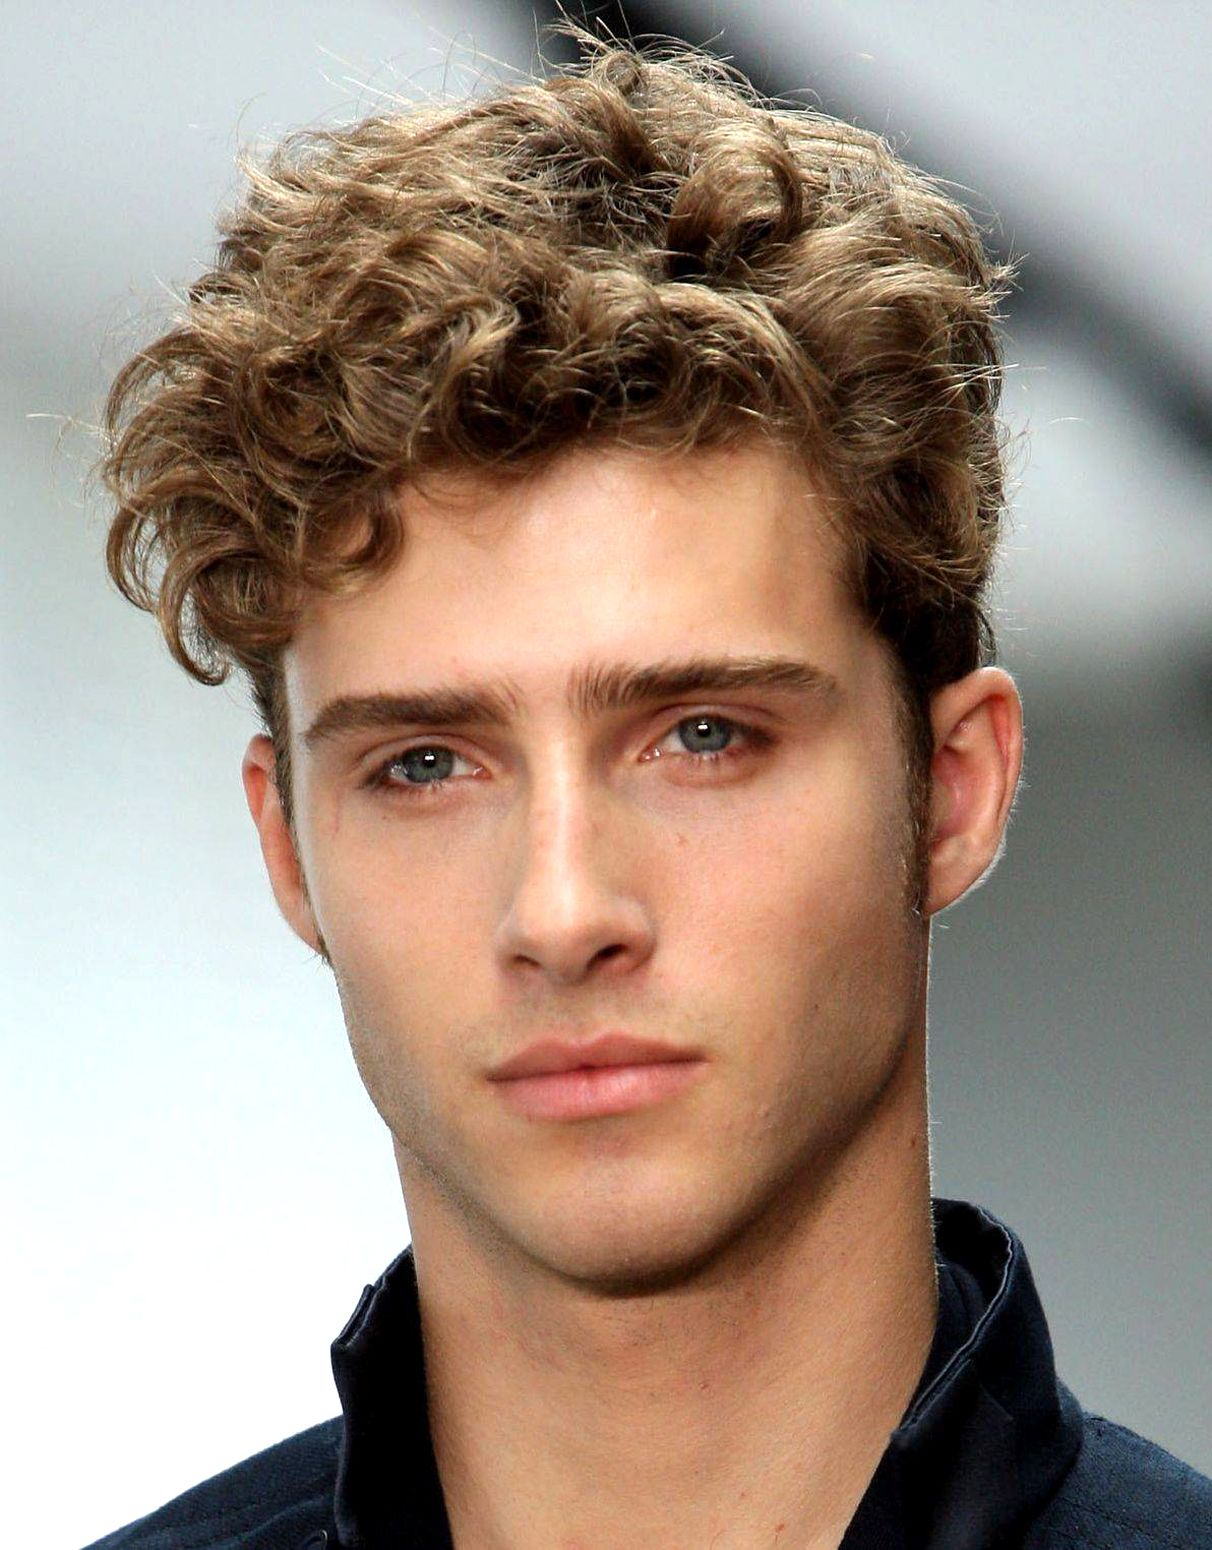 Hairstyles For Curly Hair Men Magnificent Men  Curly Hairstyles For Men Latest Mens Hairstyles 2012